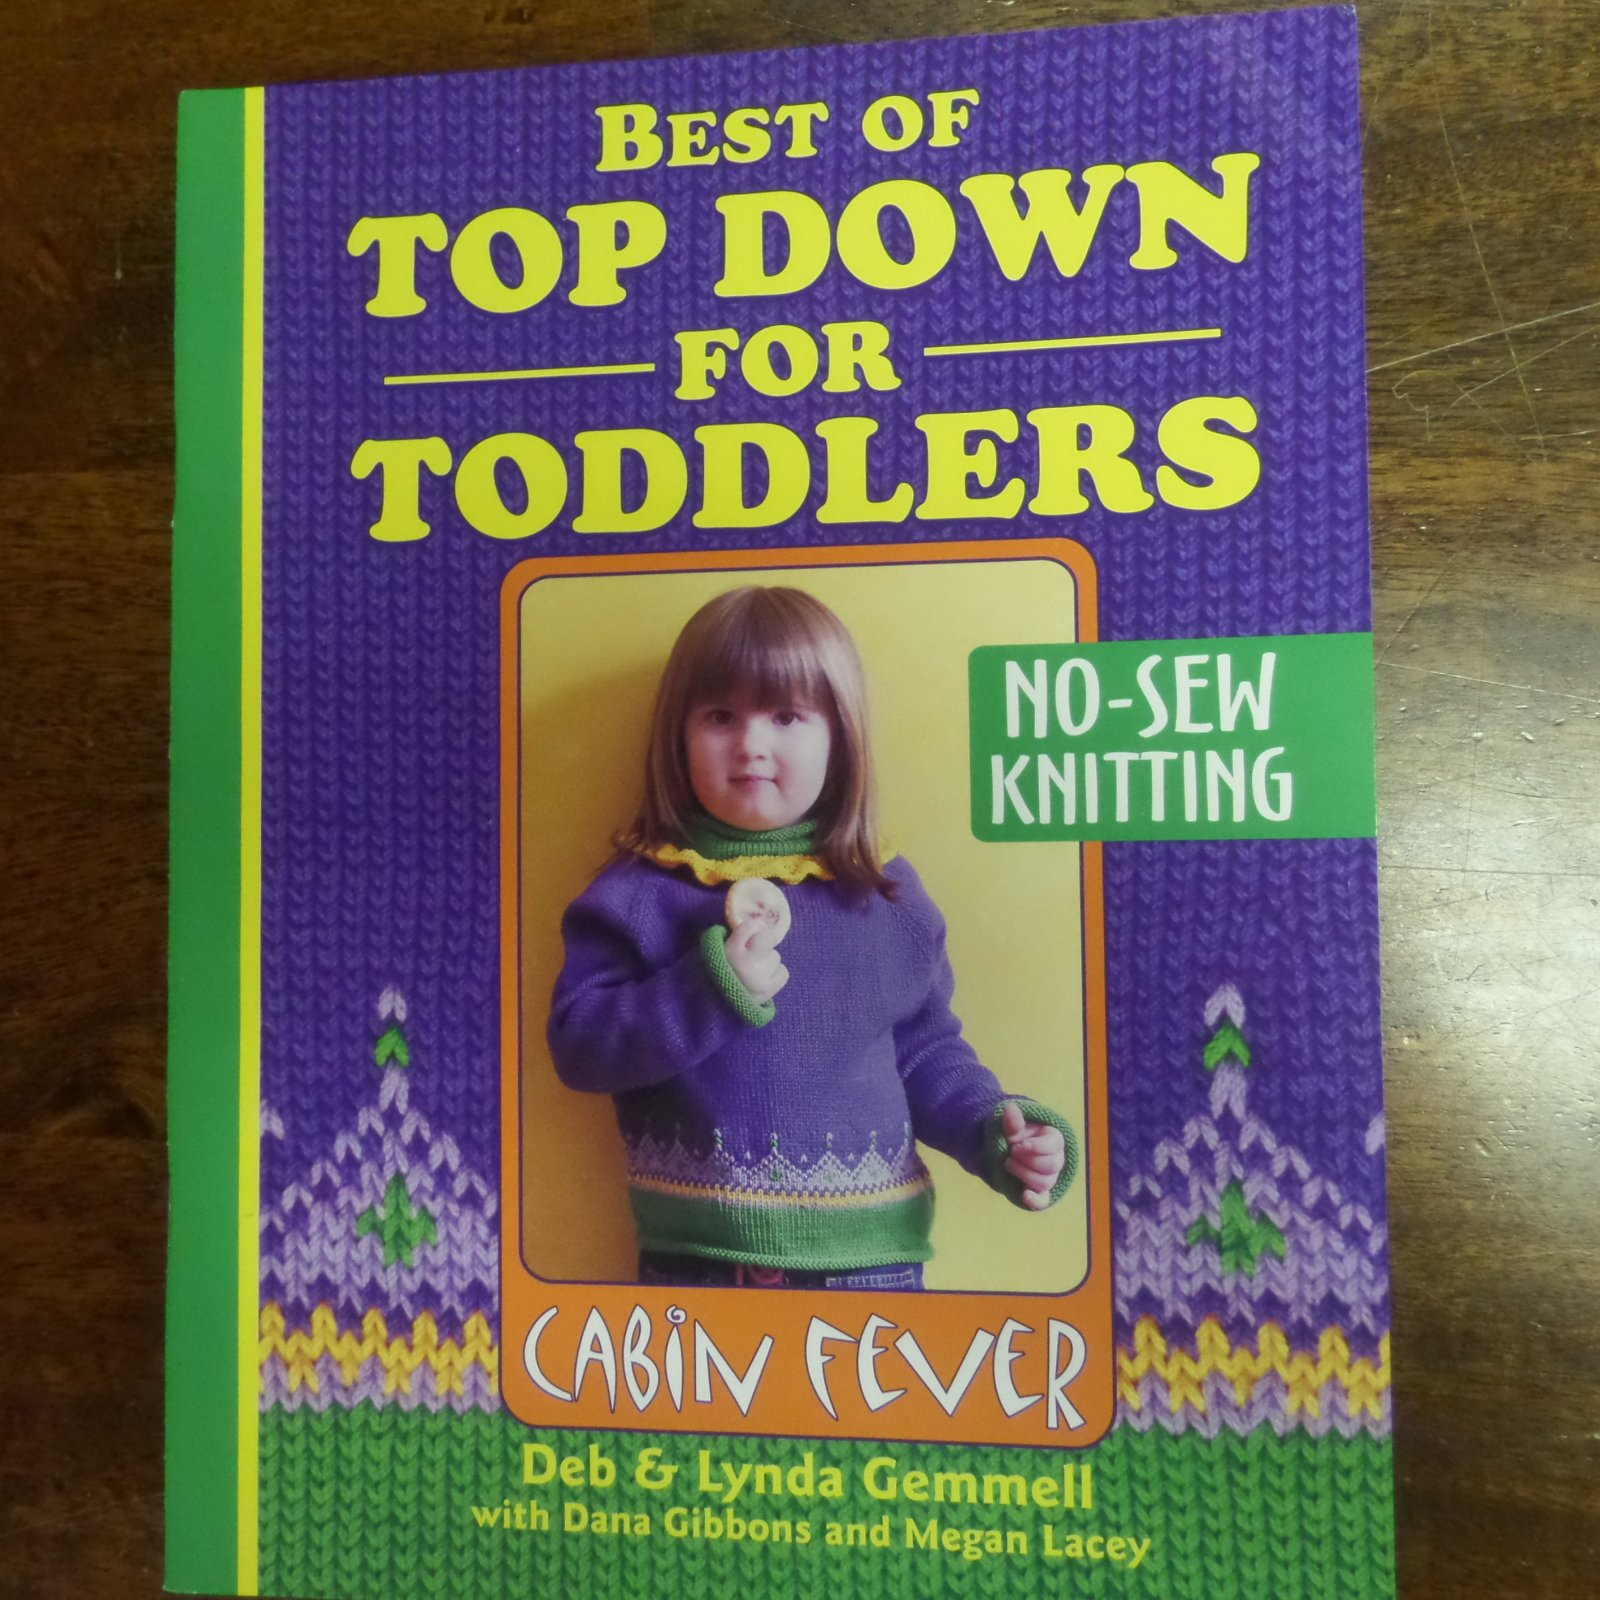 Best of Top Down for Toddlers book by Cabin Fever